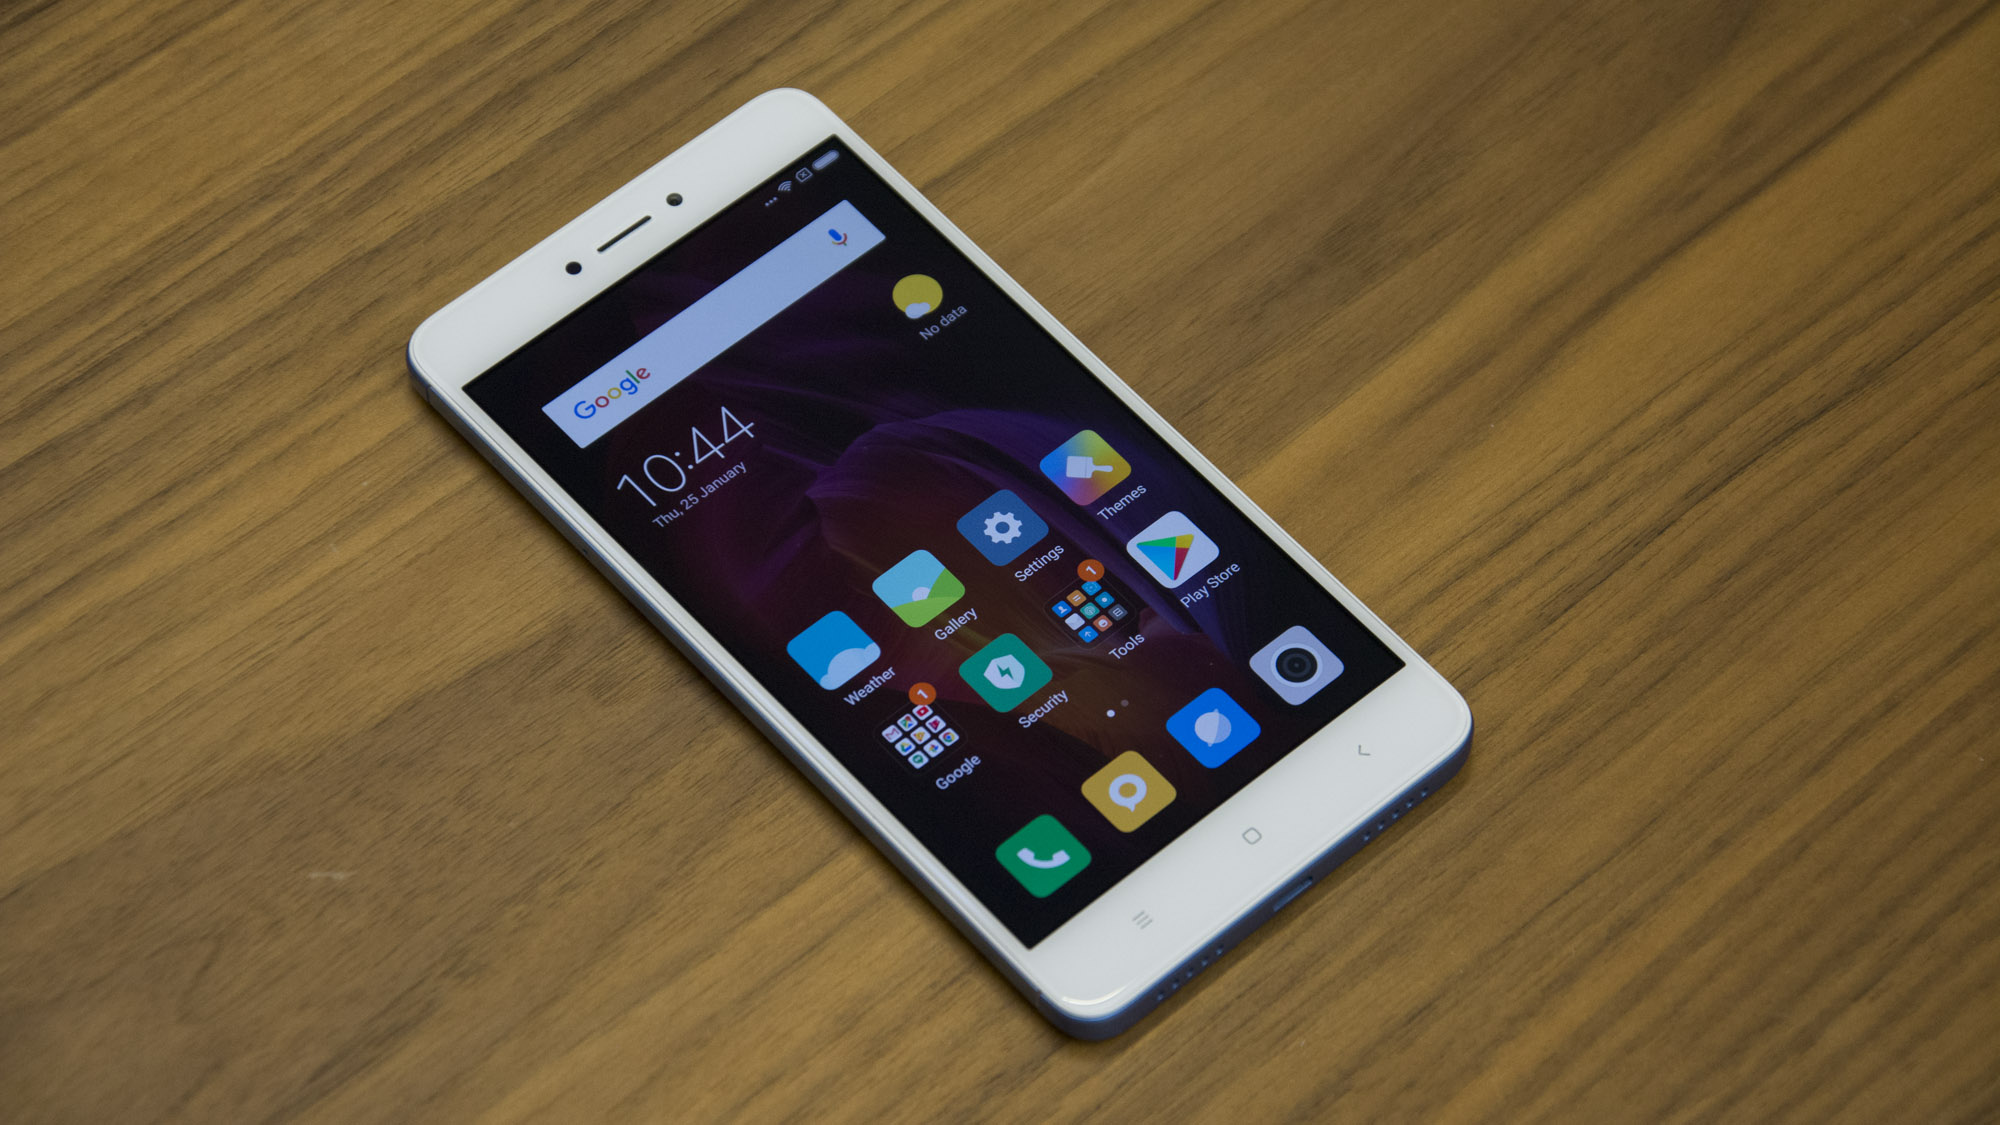 Xiaomi redmi note 4x review the new 150 smartphone king expert xiaomi redmi note 4x review display the phone has a full hd 1920 x 1080 ips display that measures 55in across the diagonal stopboris Image collections